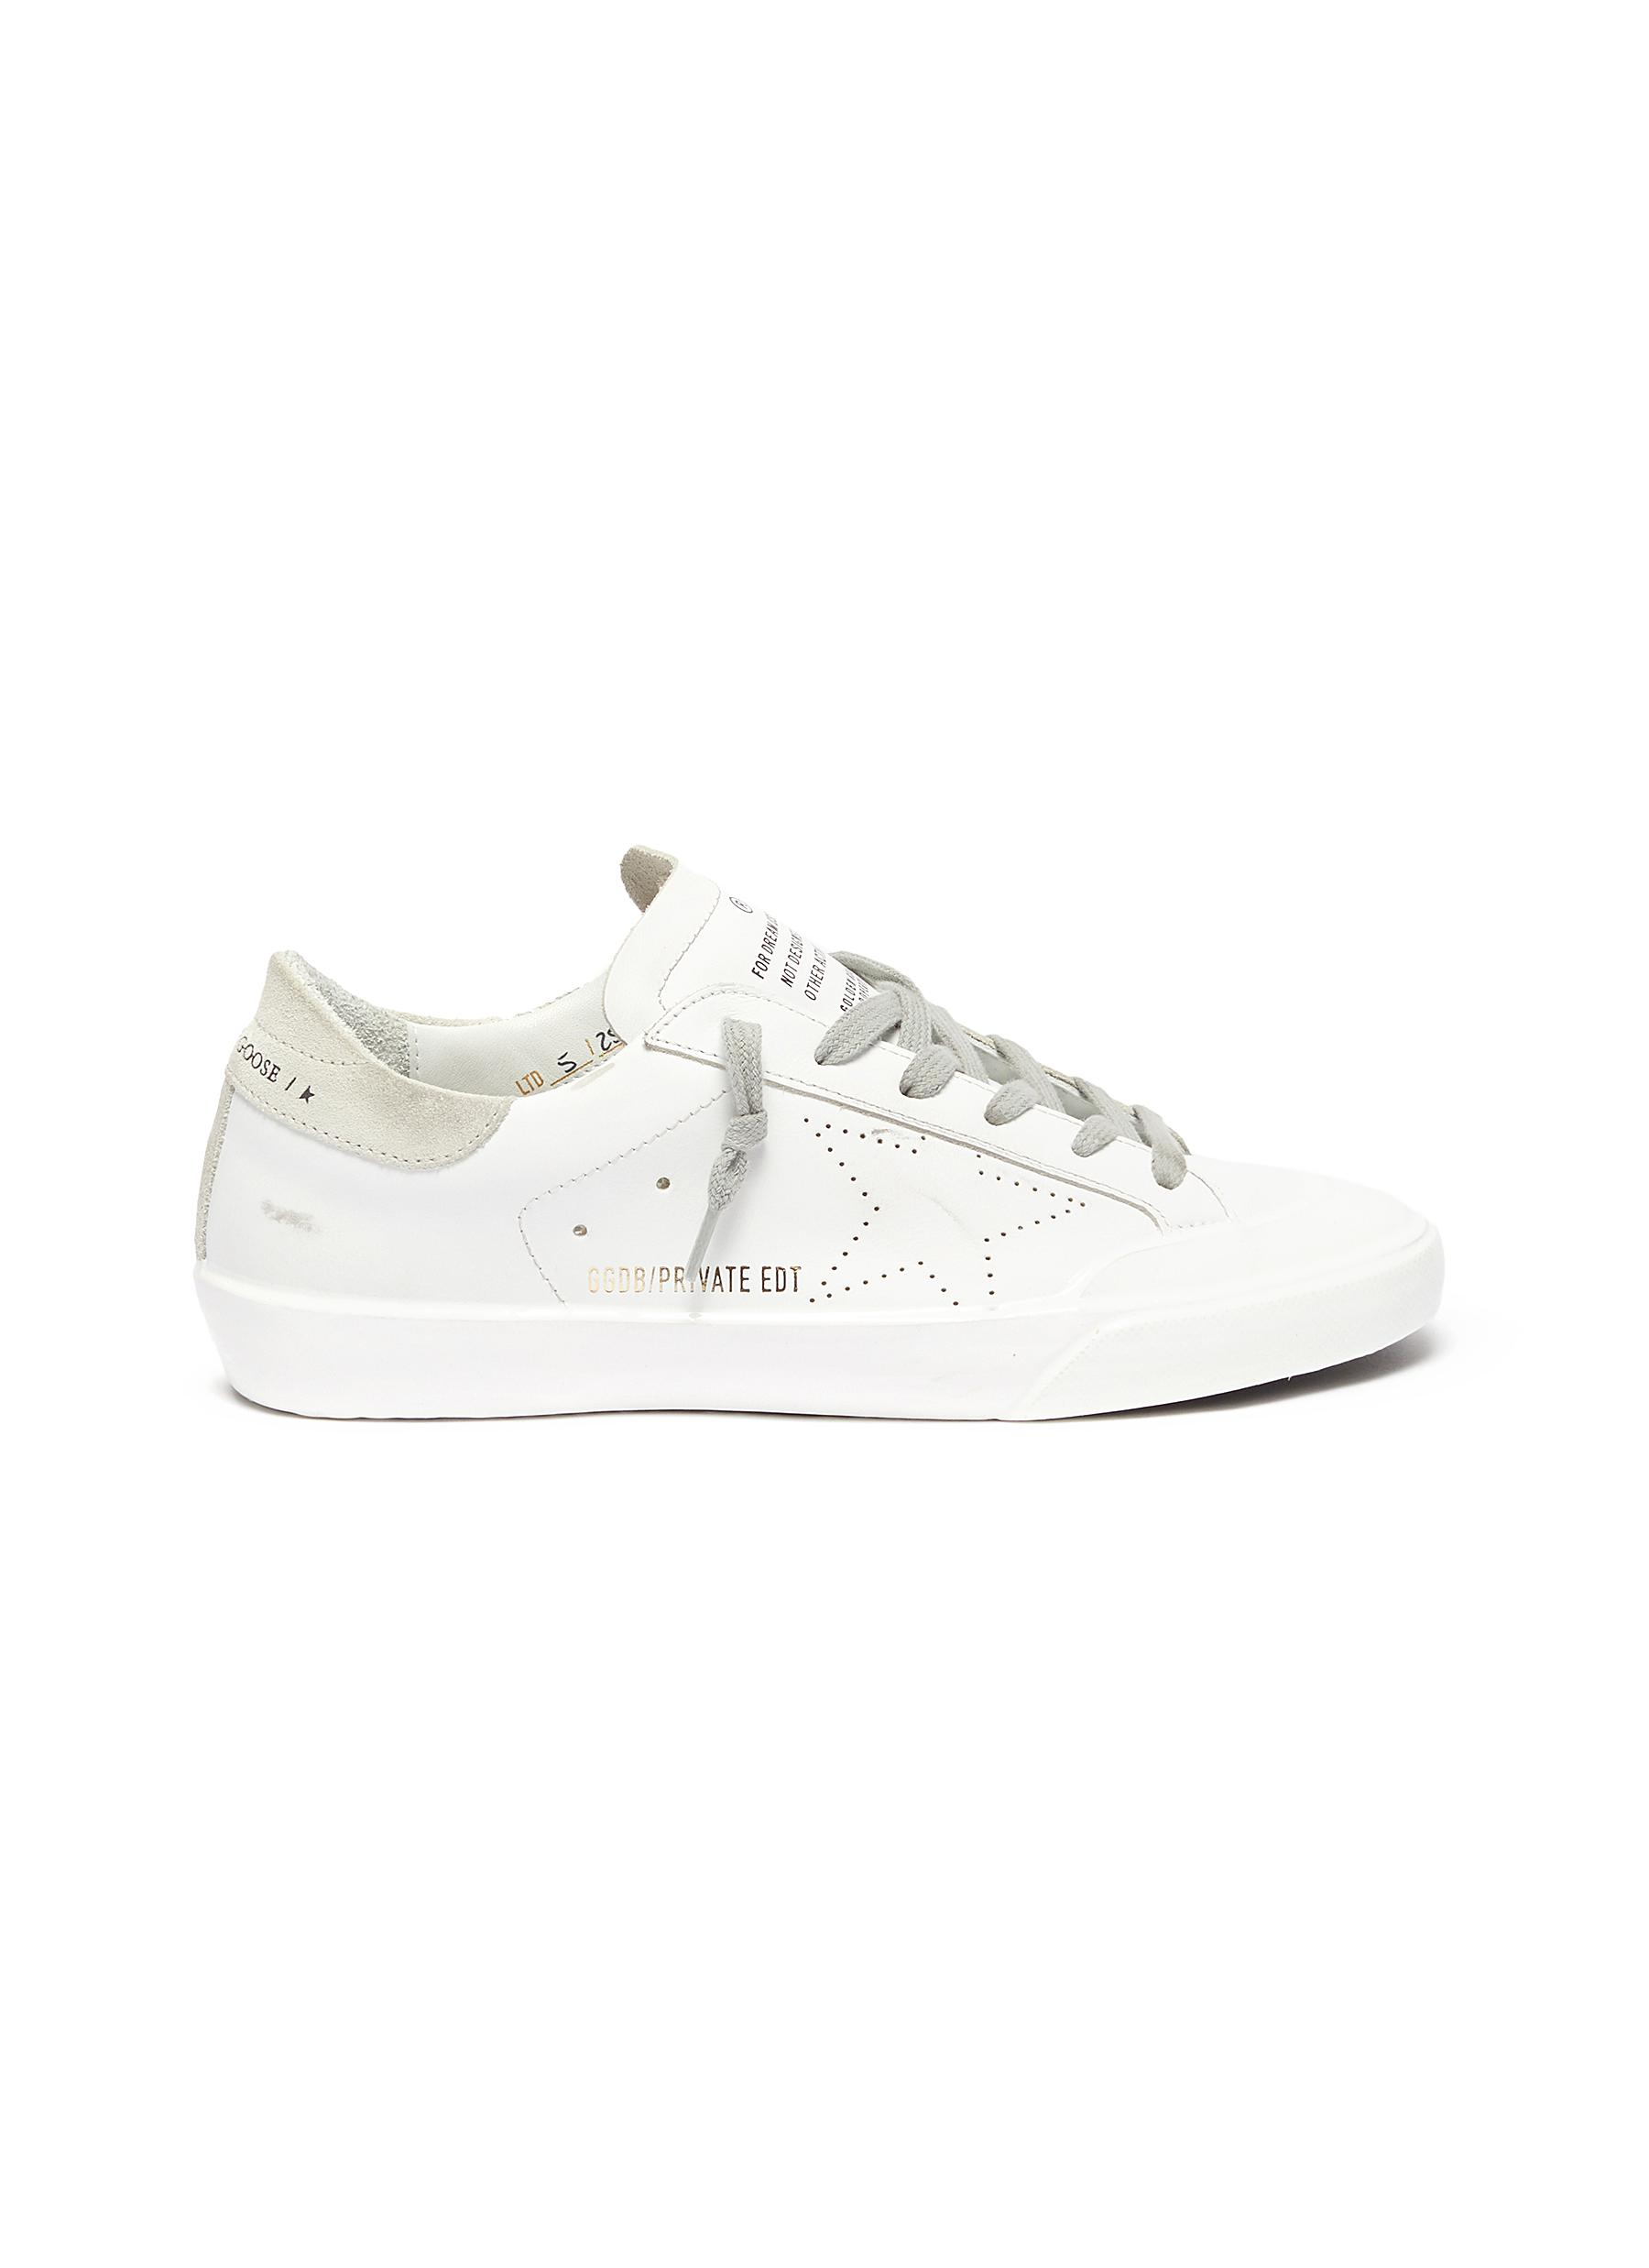 'Superstar' Perforated Star Motif Leather Sneakers